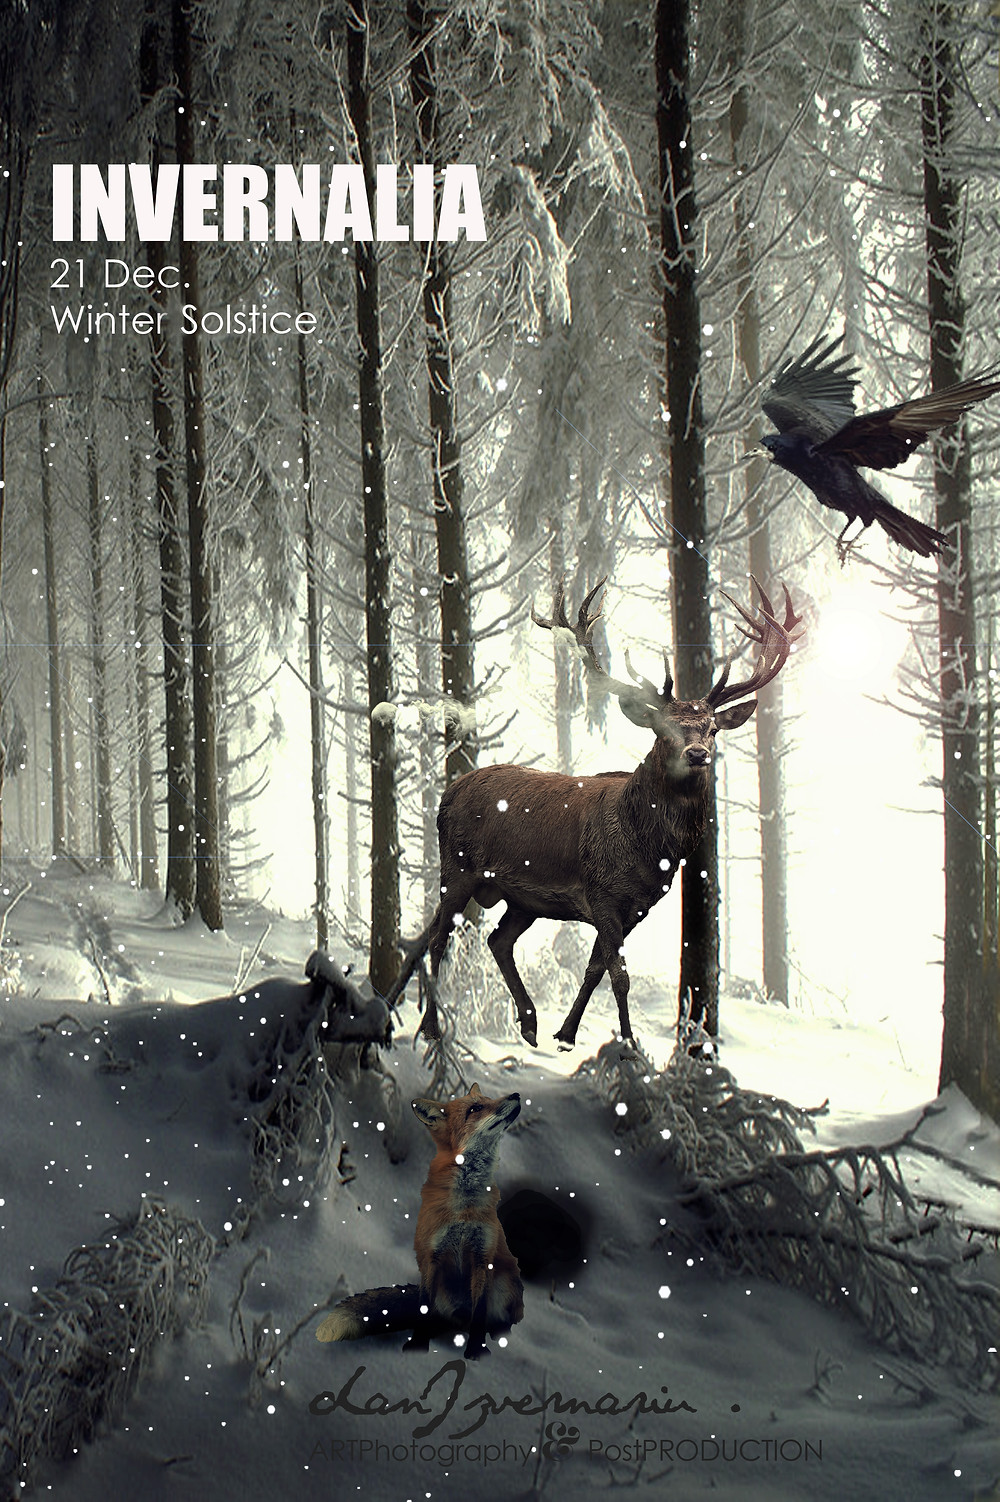 INVERNALIA / The Crow, Deer and Fox  DANIZVERNARIU.COM ArtPhotography&PostProduction, España